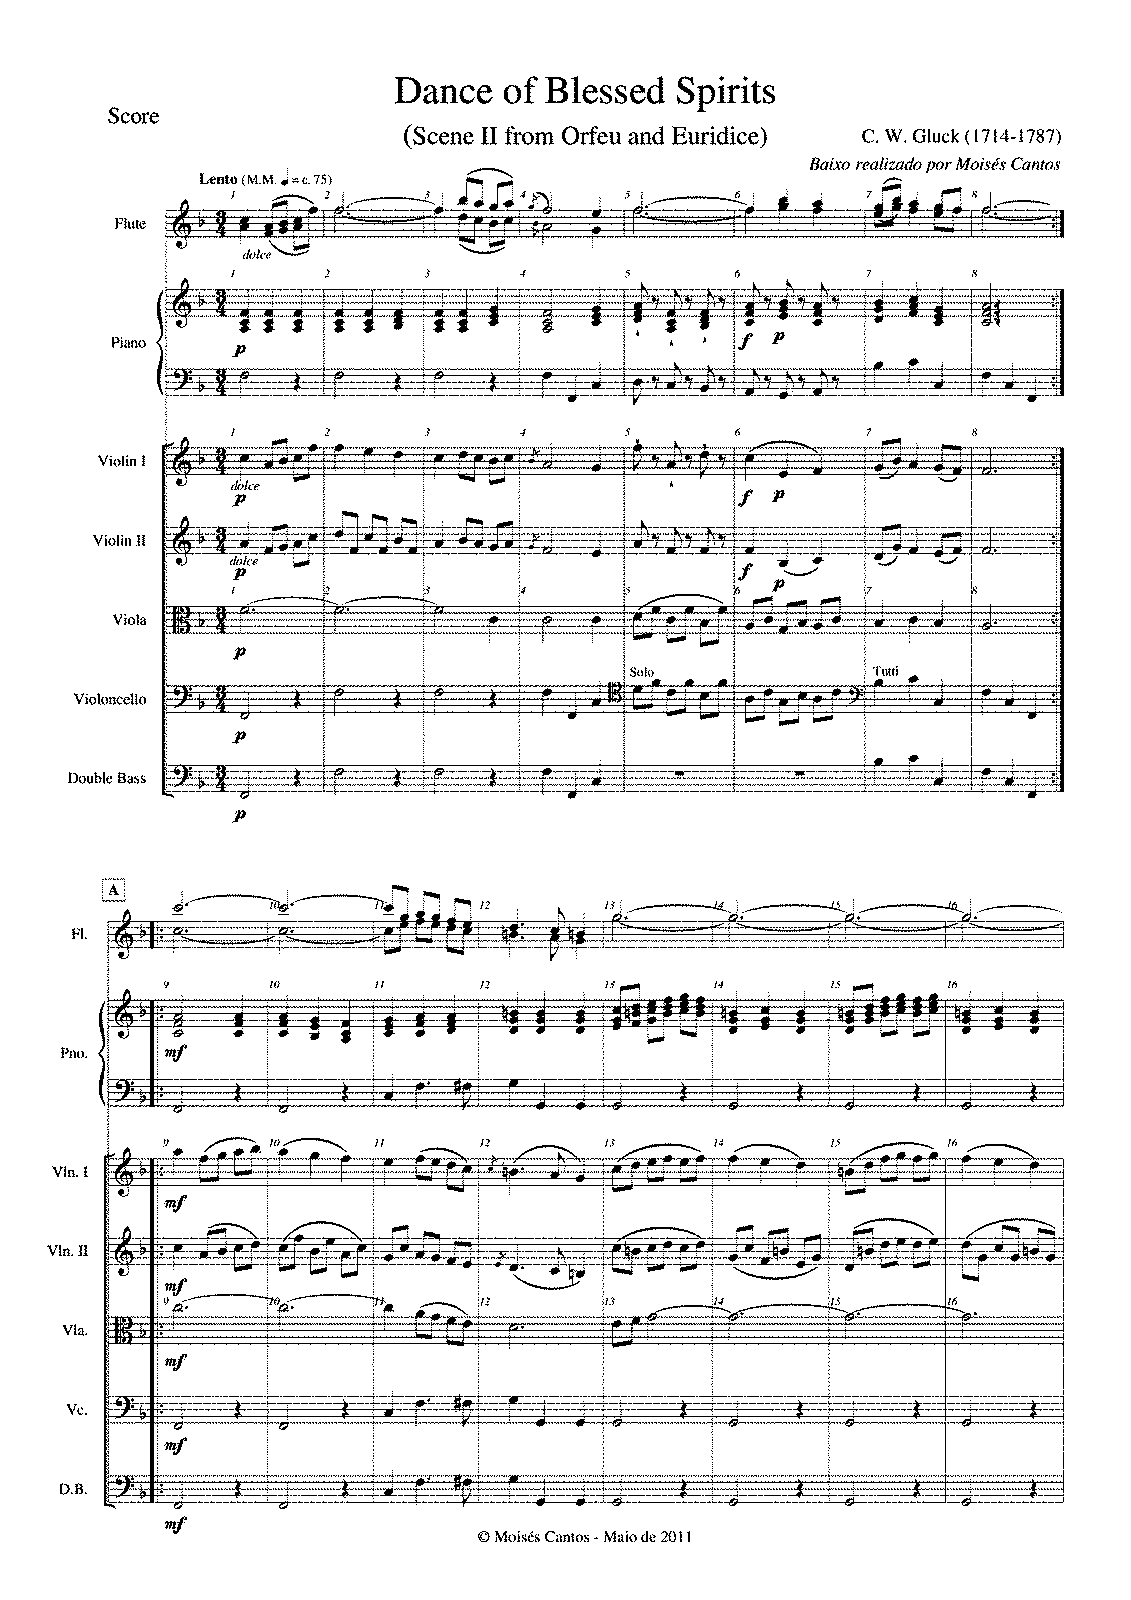 PMLP210035-Gluck - Dance of Blessed Spirits - Score.pdf